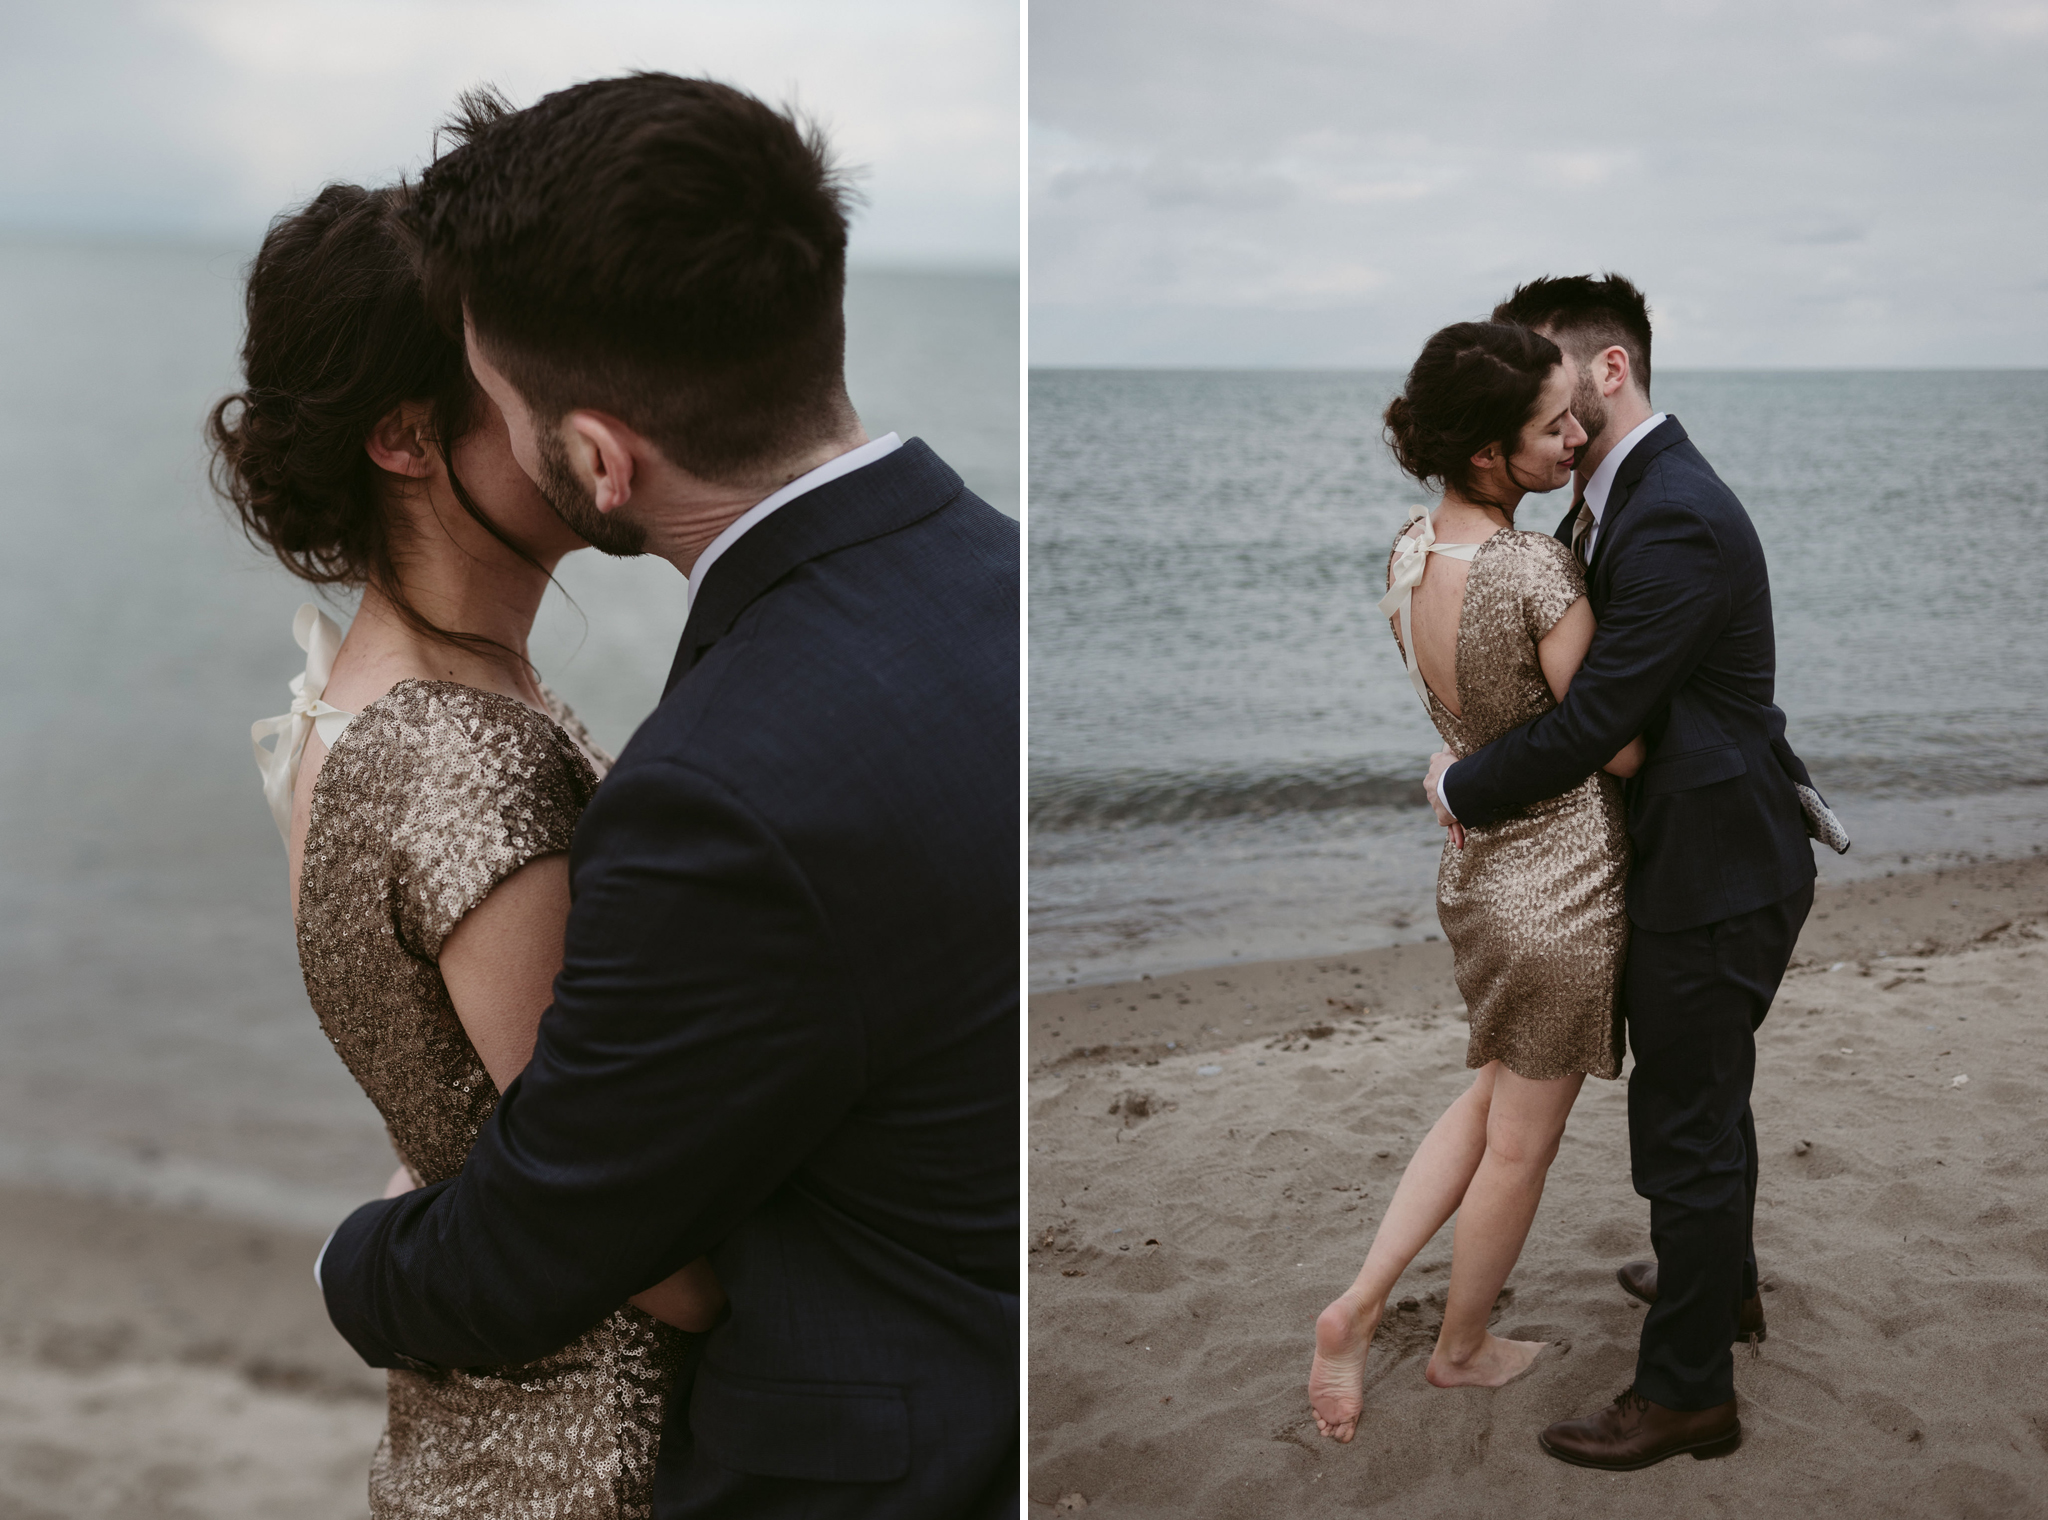 Guy kissing girl on cheek on the beach